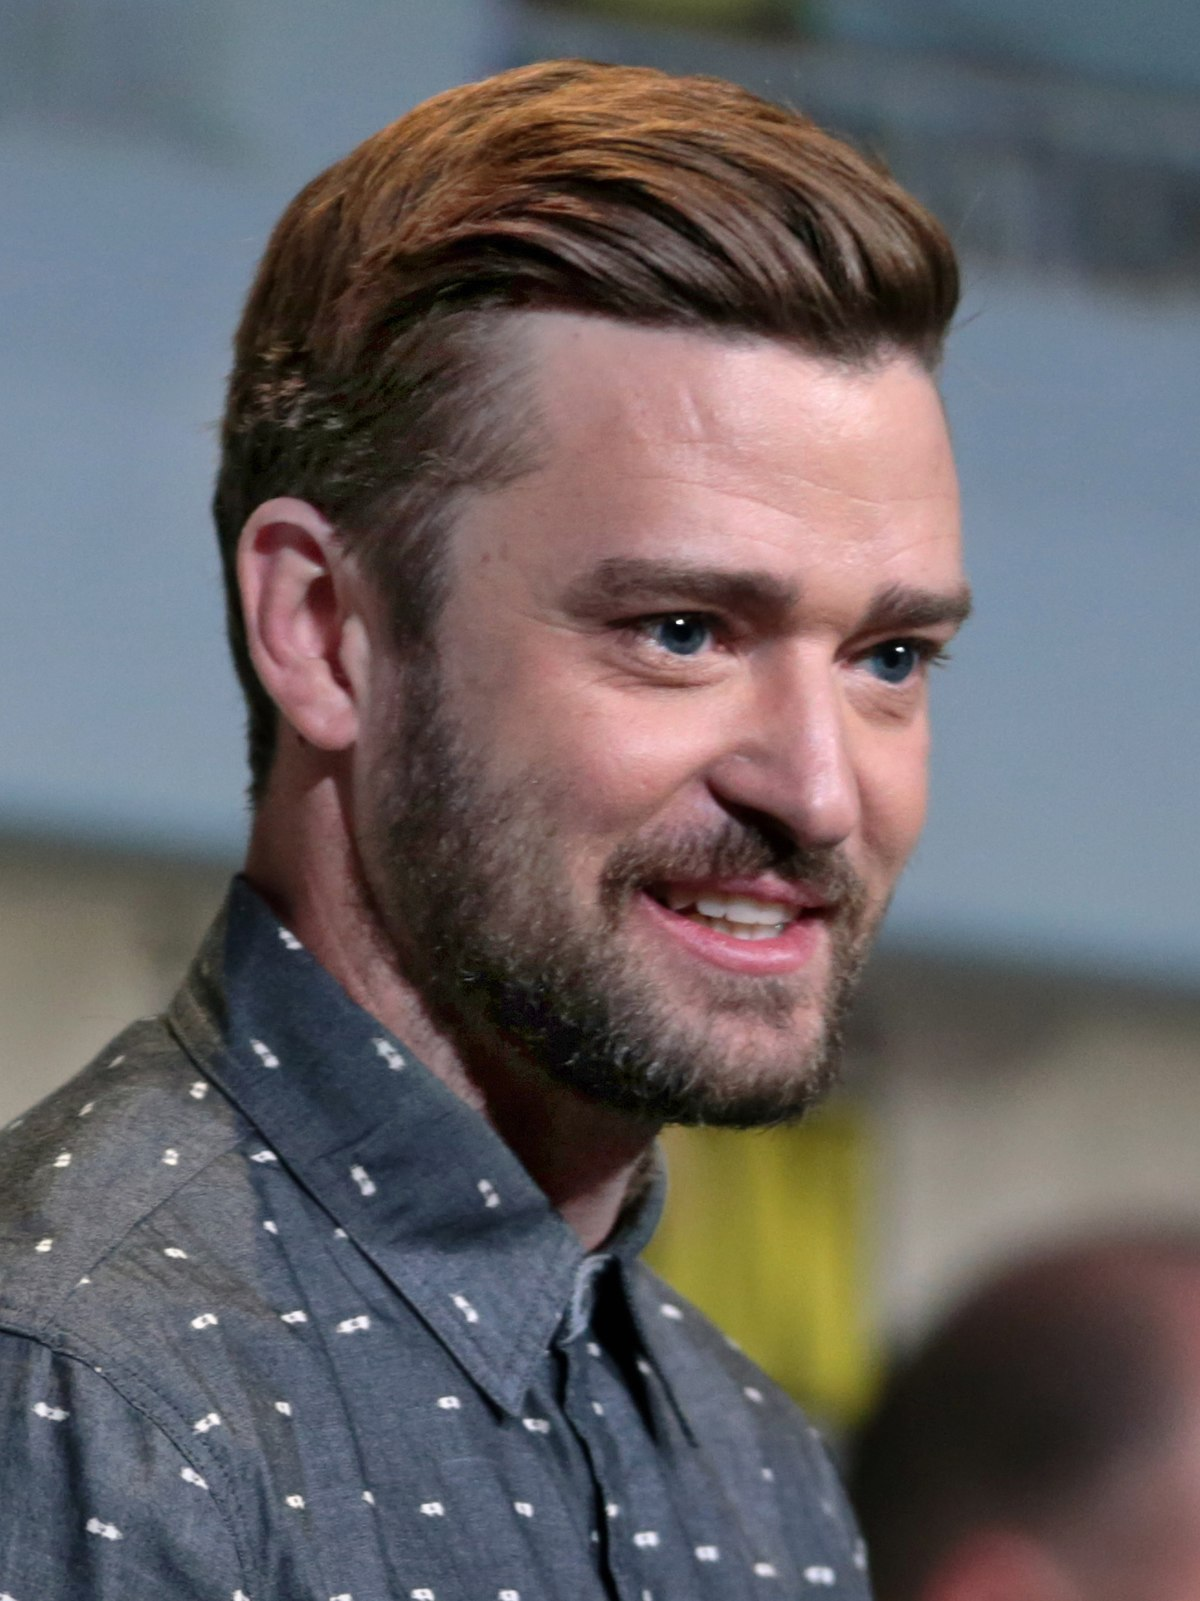 justin timberlake - photo #1